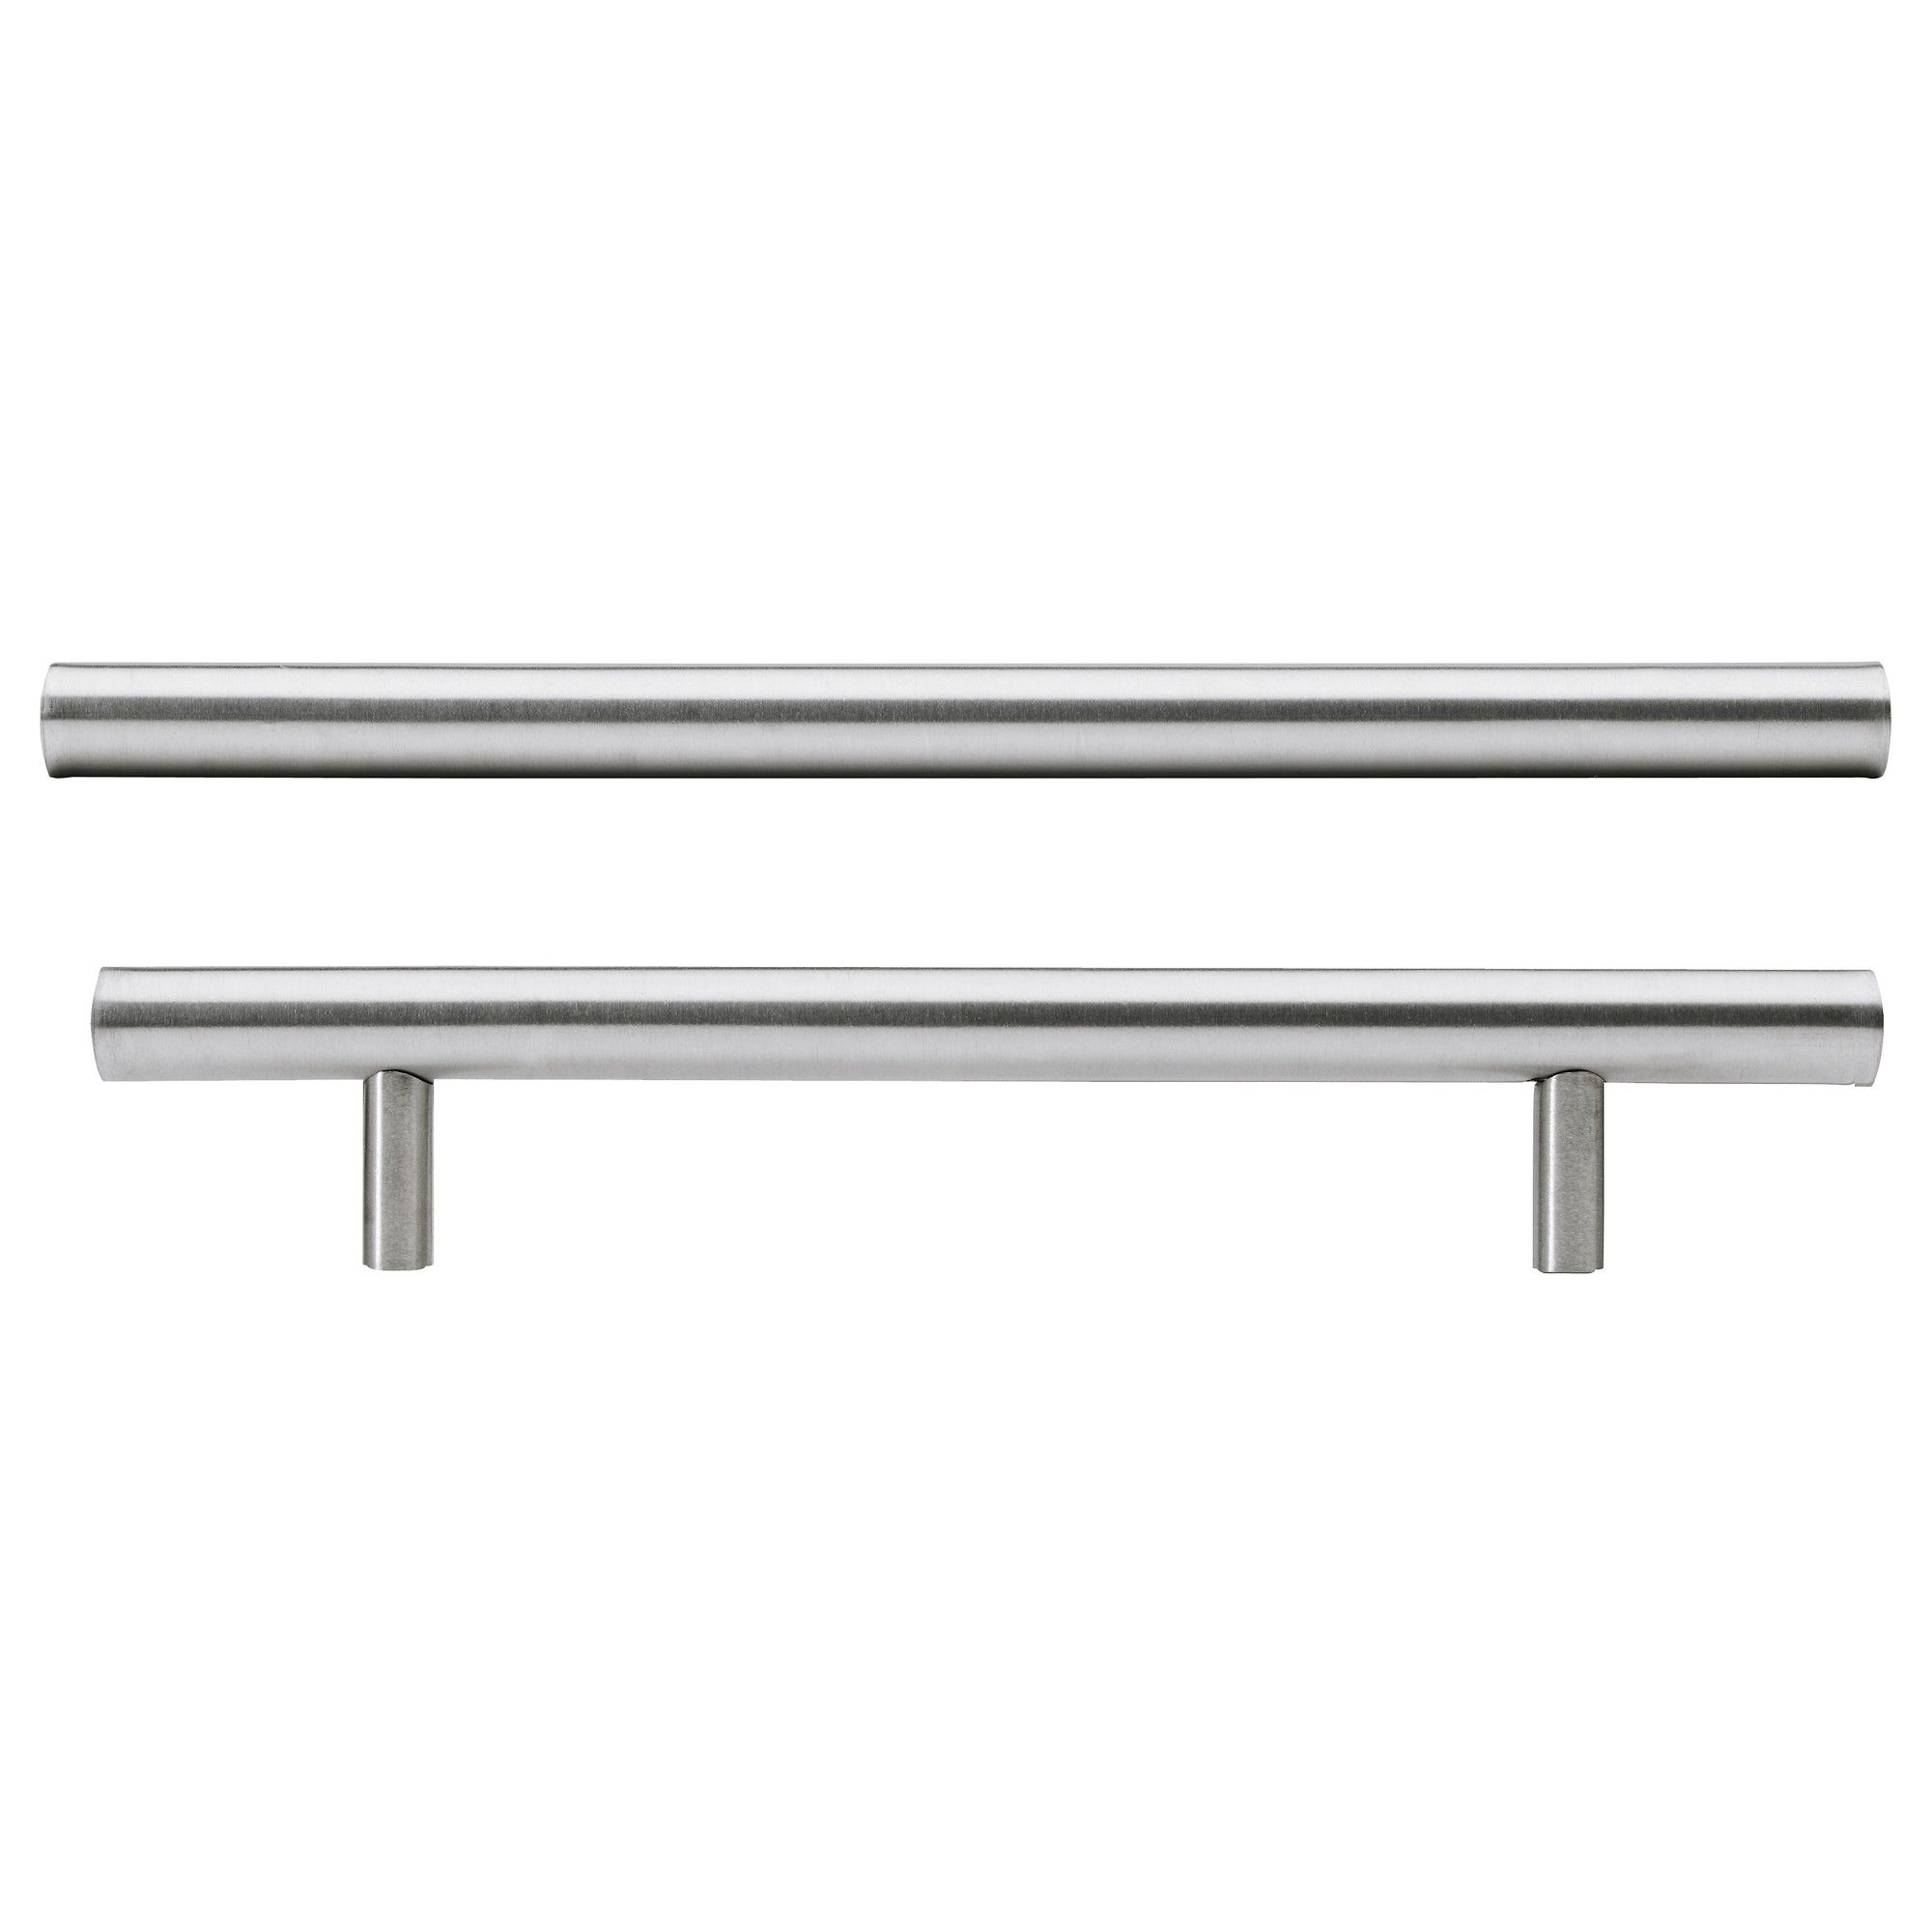 lansa handle stainless steel stainless steel kitchen cabinets